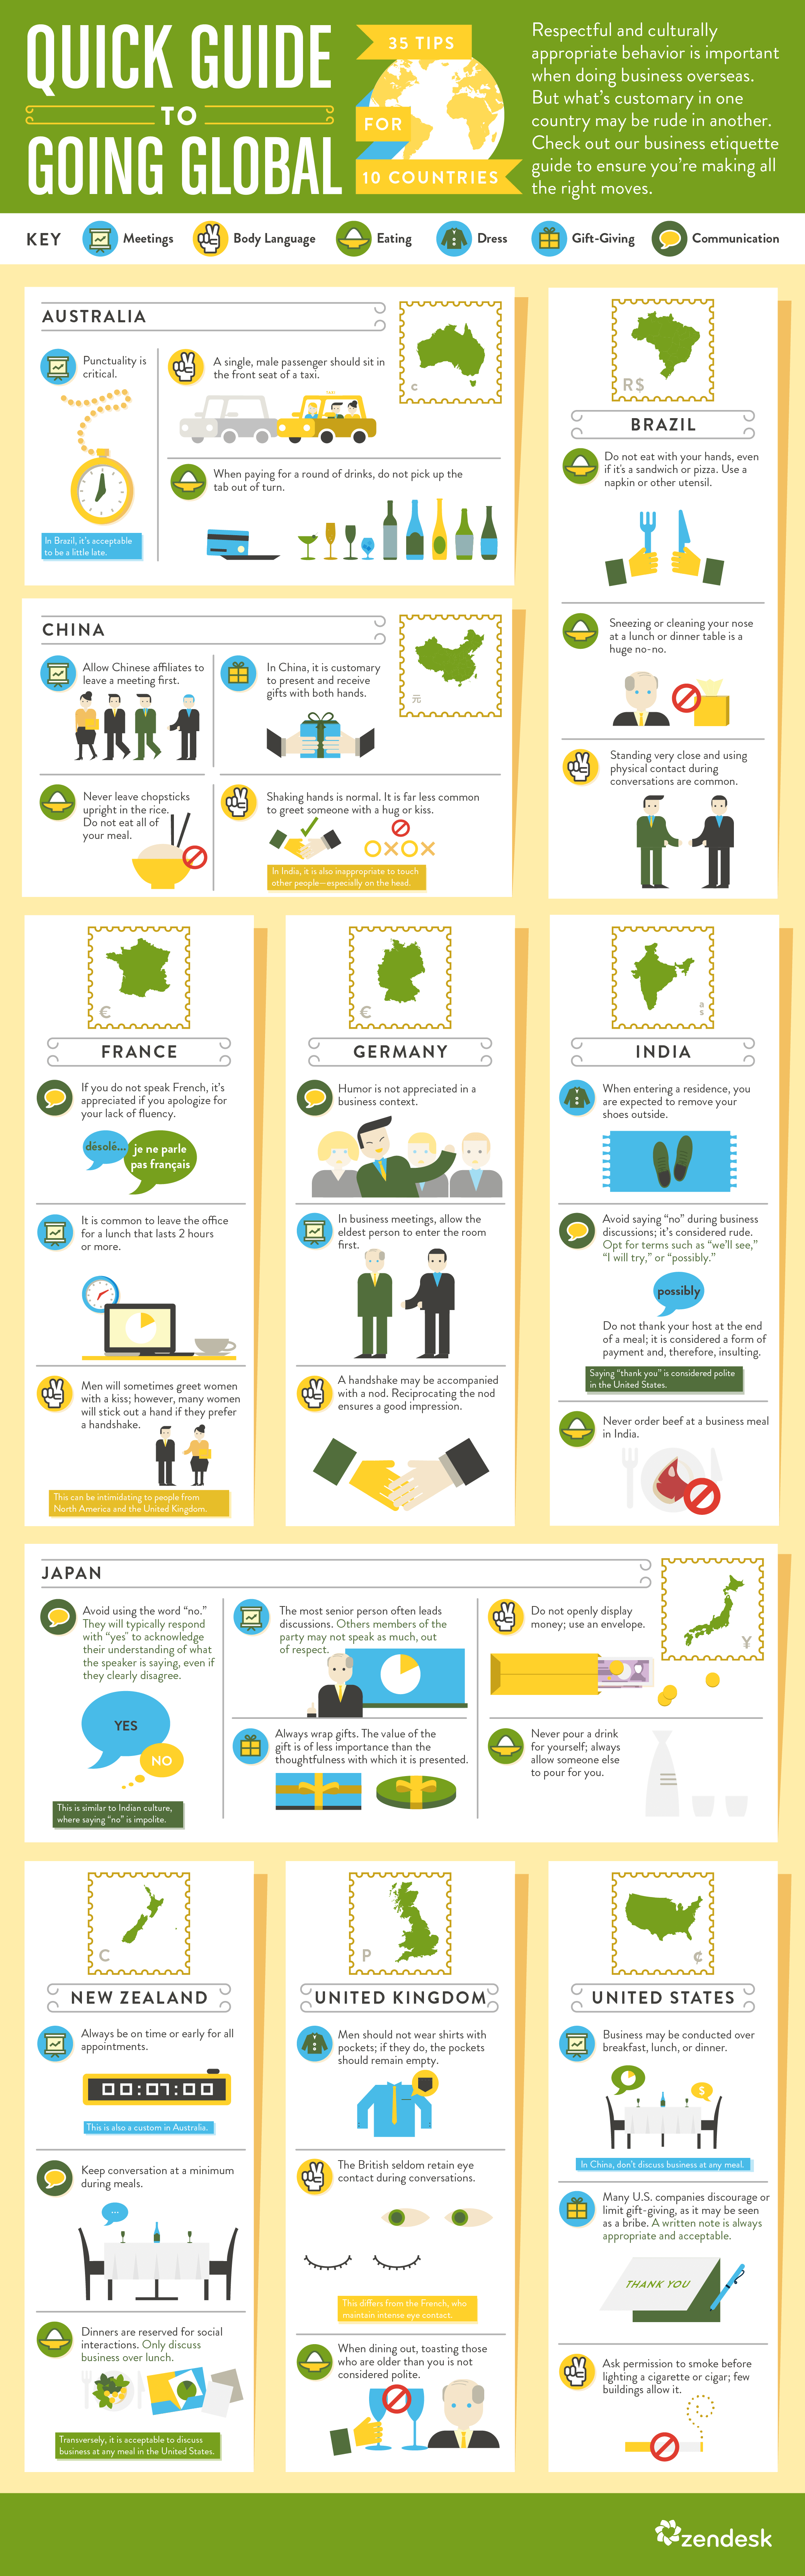 Manners Around The World Infographic Library